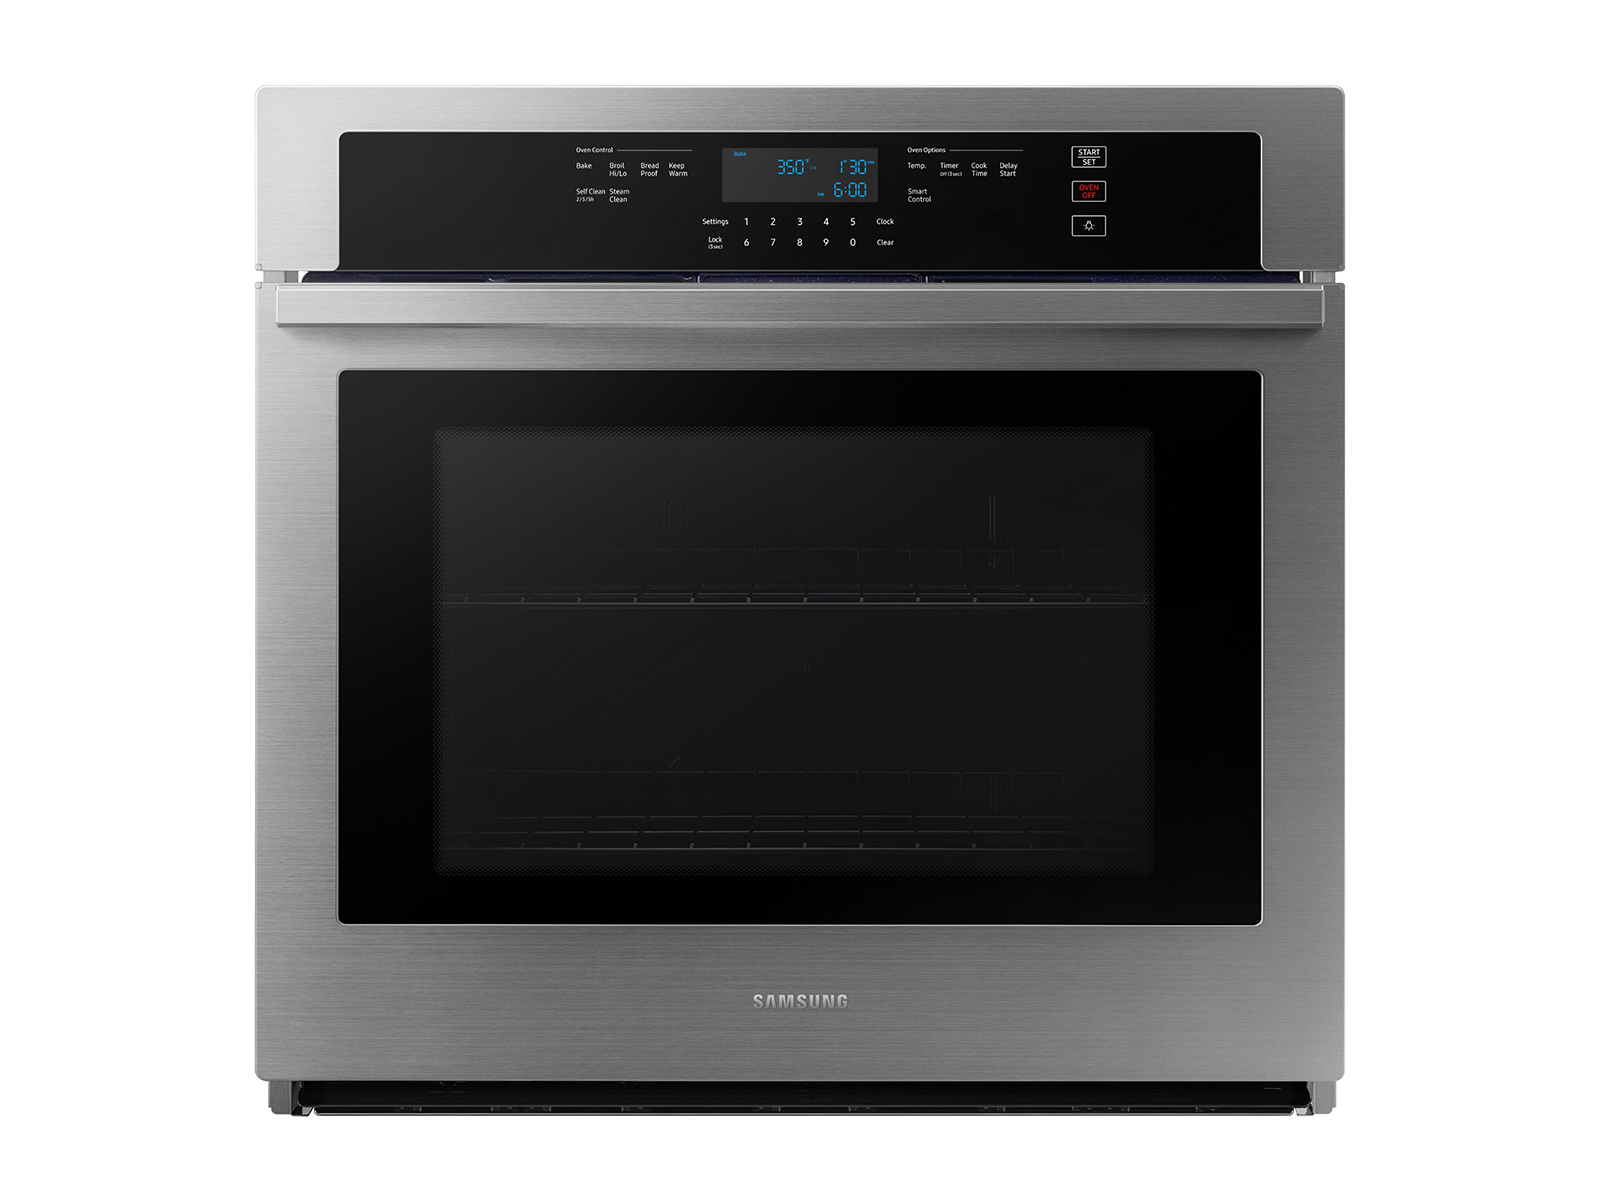 30 Single Wall Oven With Wi Fi In Stainless Steel Wall Ovens Nv51t5511ss Aa Samsung Us